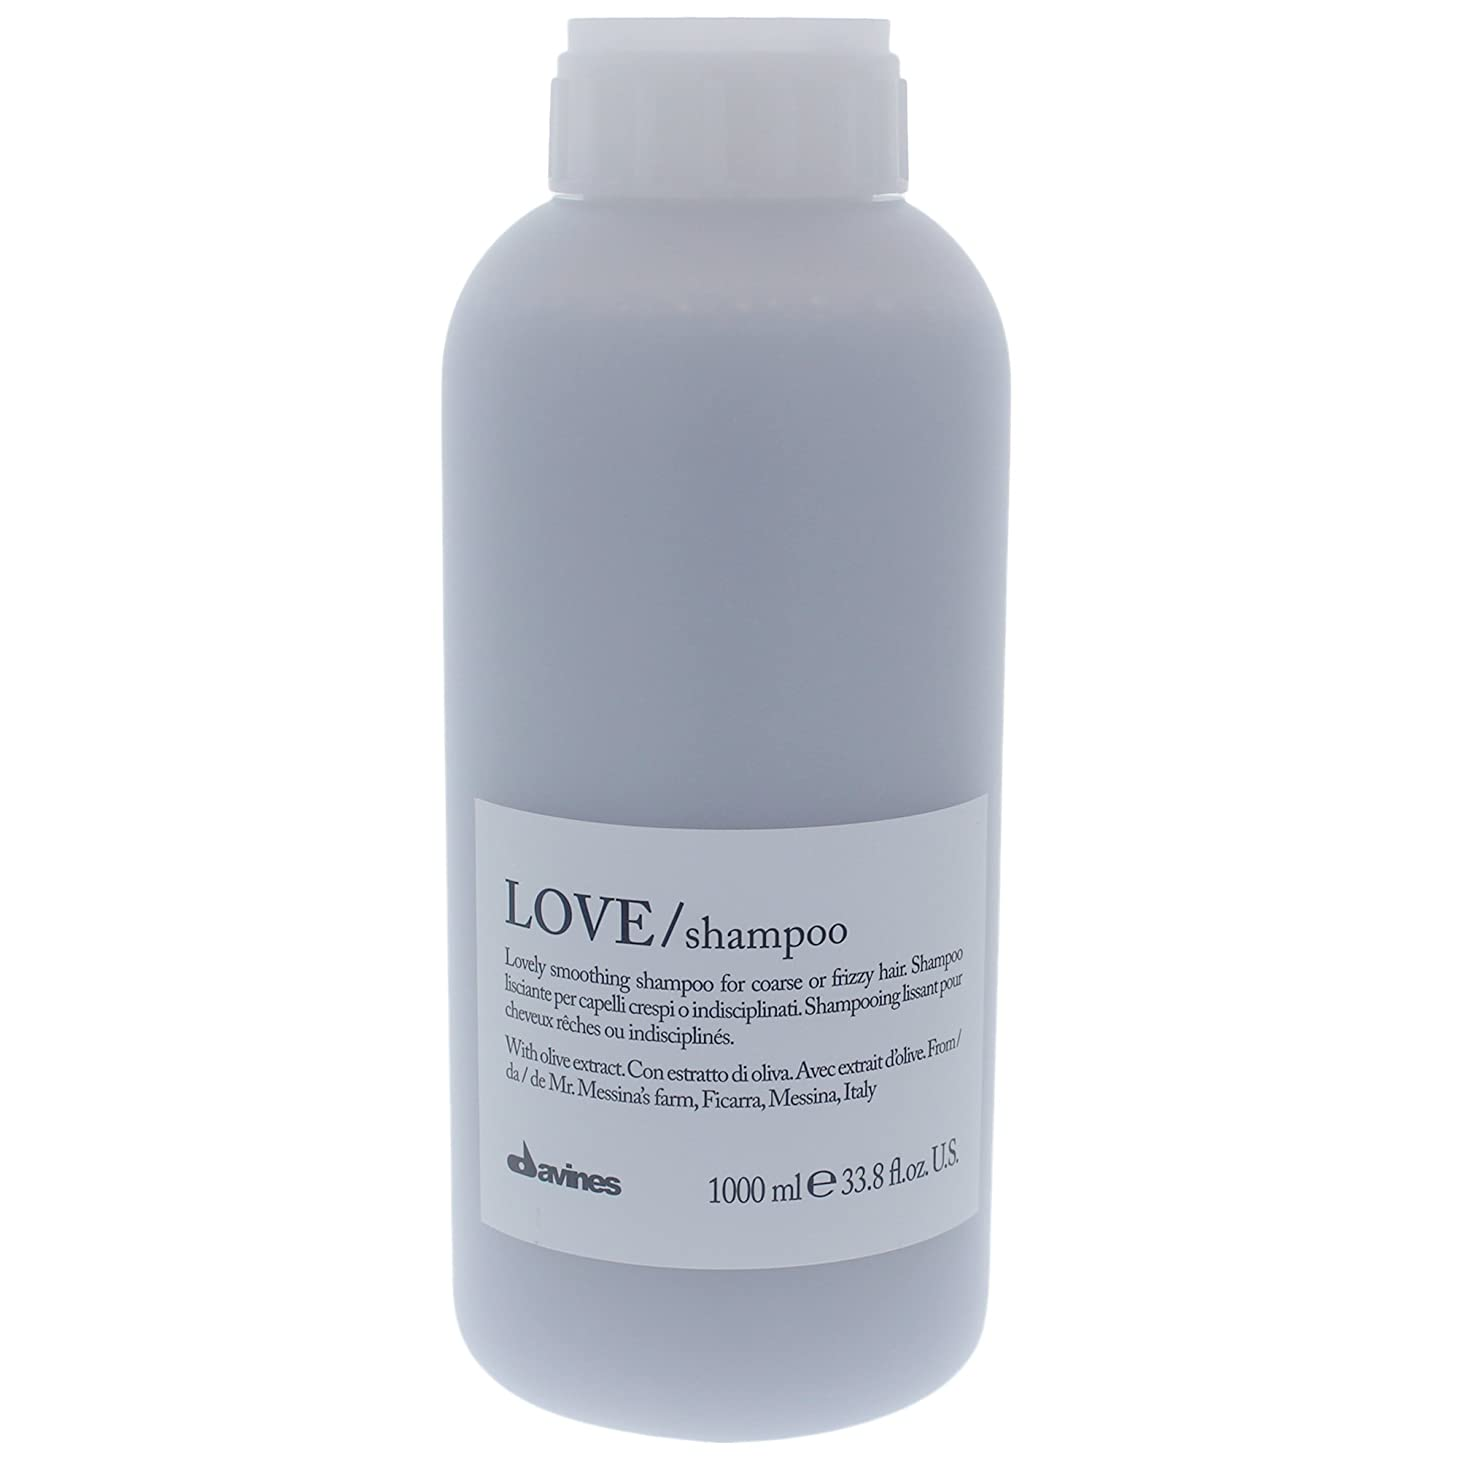 アレルギー性箱馬鹿Davines Love Lovely Smoothing Shampoo for Harsh & Frizzy Hair [並行輸入品]